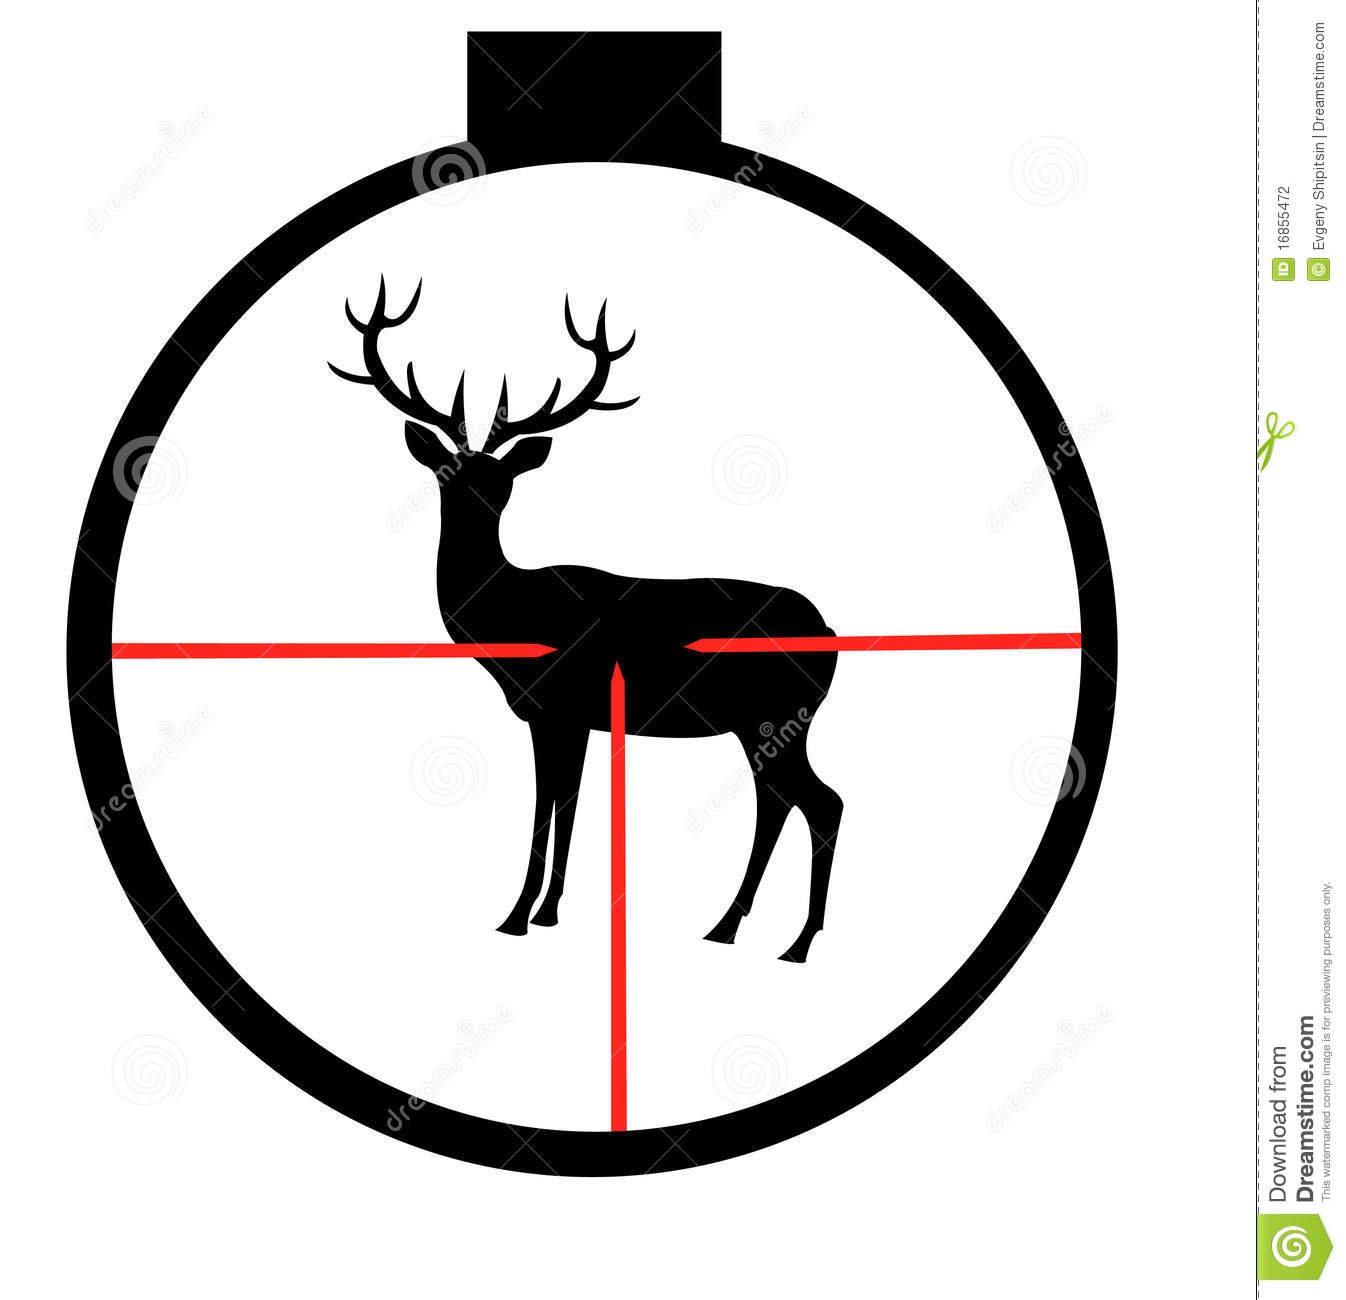 Hunting Clipart & Hunting Clip Art Images.